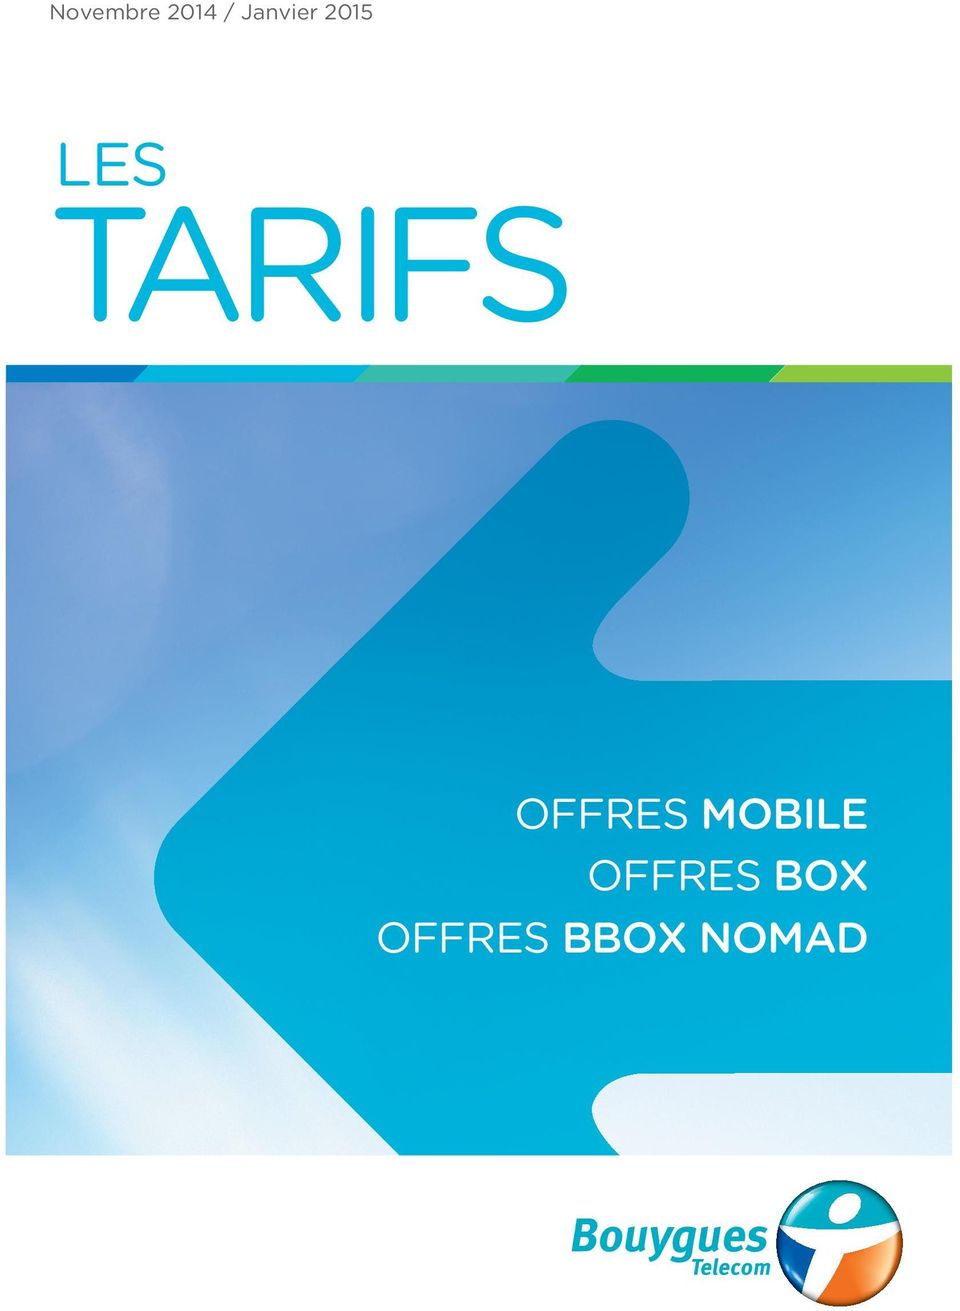 TARIFS OFFRES MOBILE